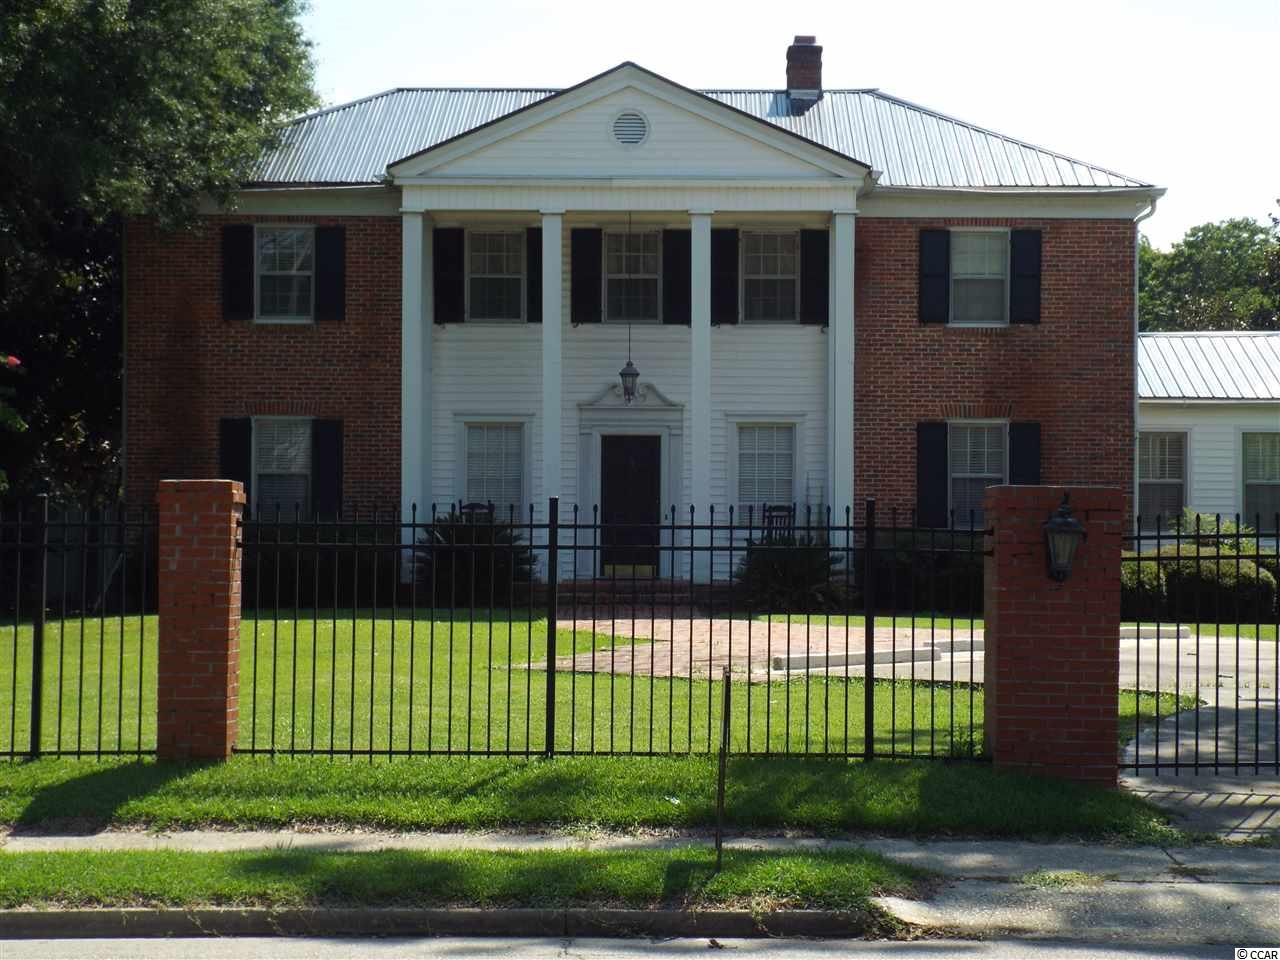 Single Family Home for Sale at 803 South Main Street 803 South Main Street Mullins, South Carolina 29574 United States